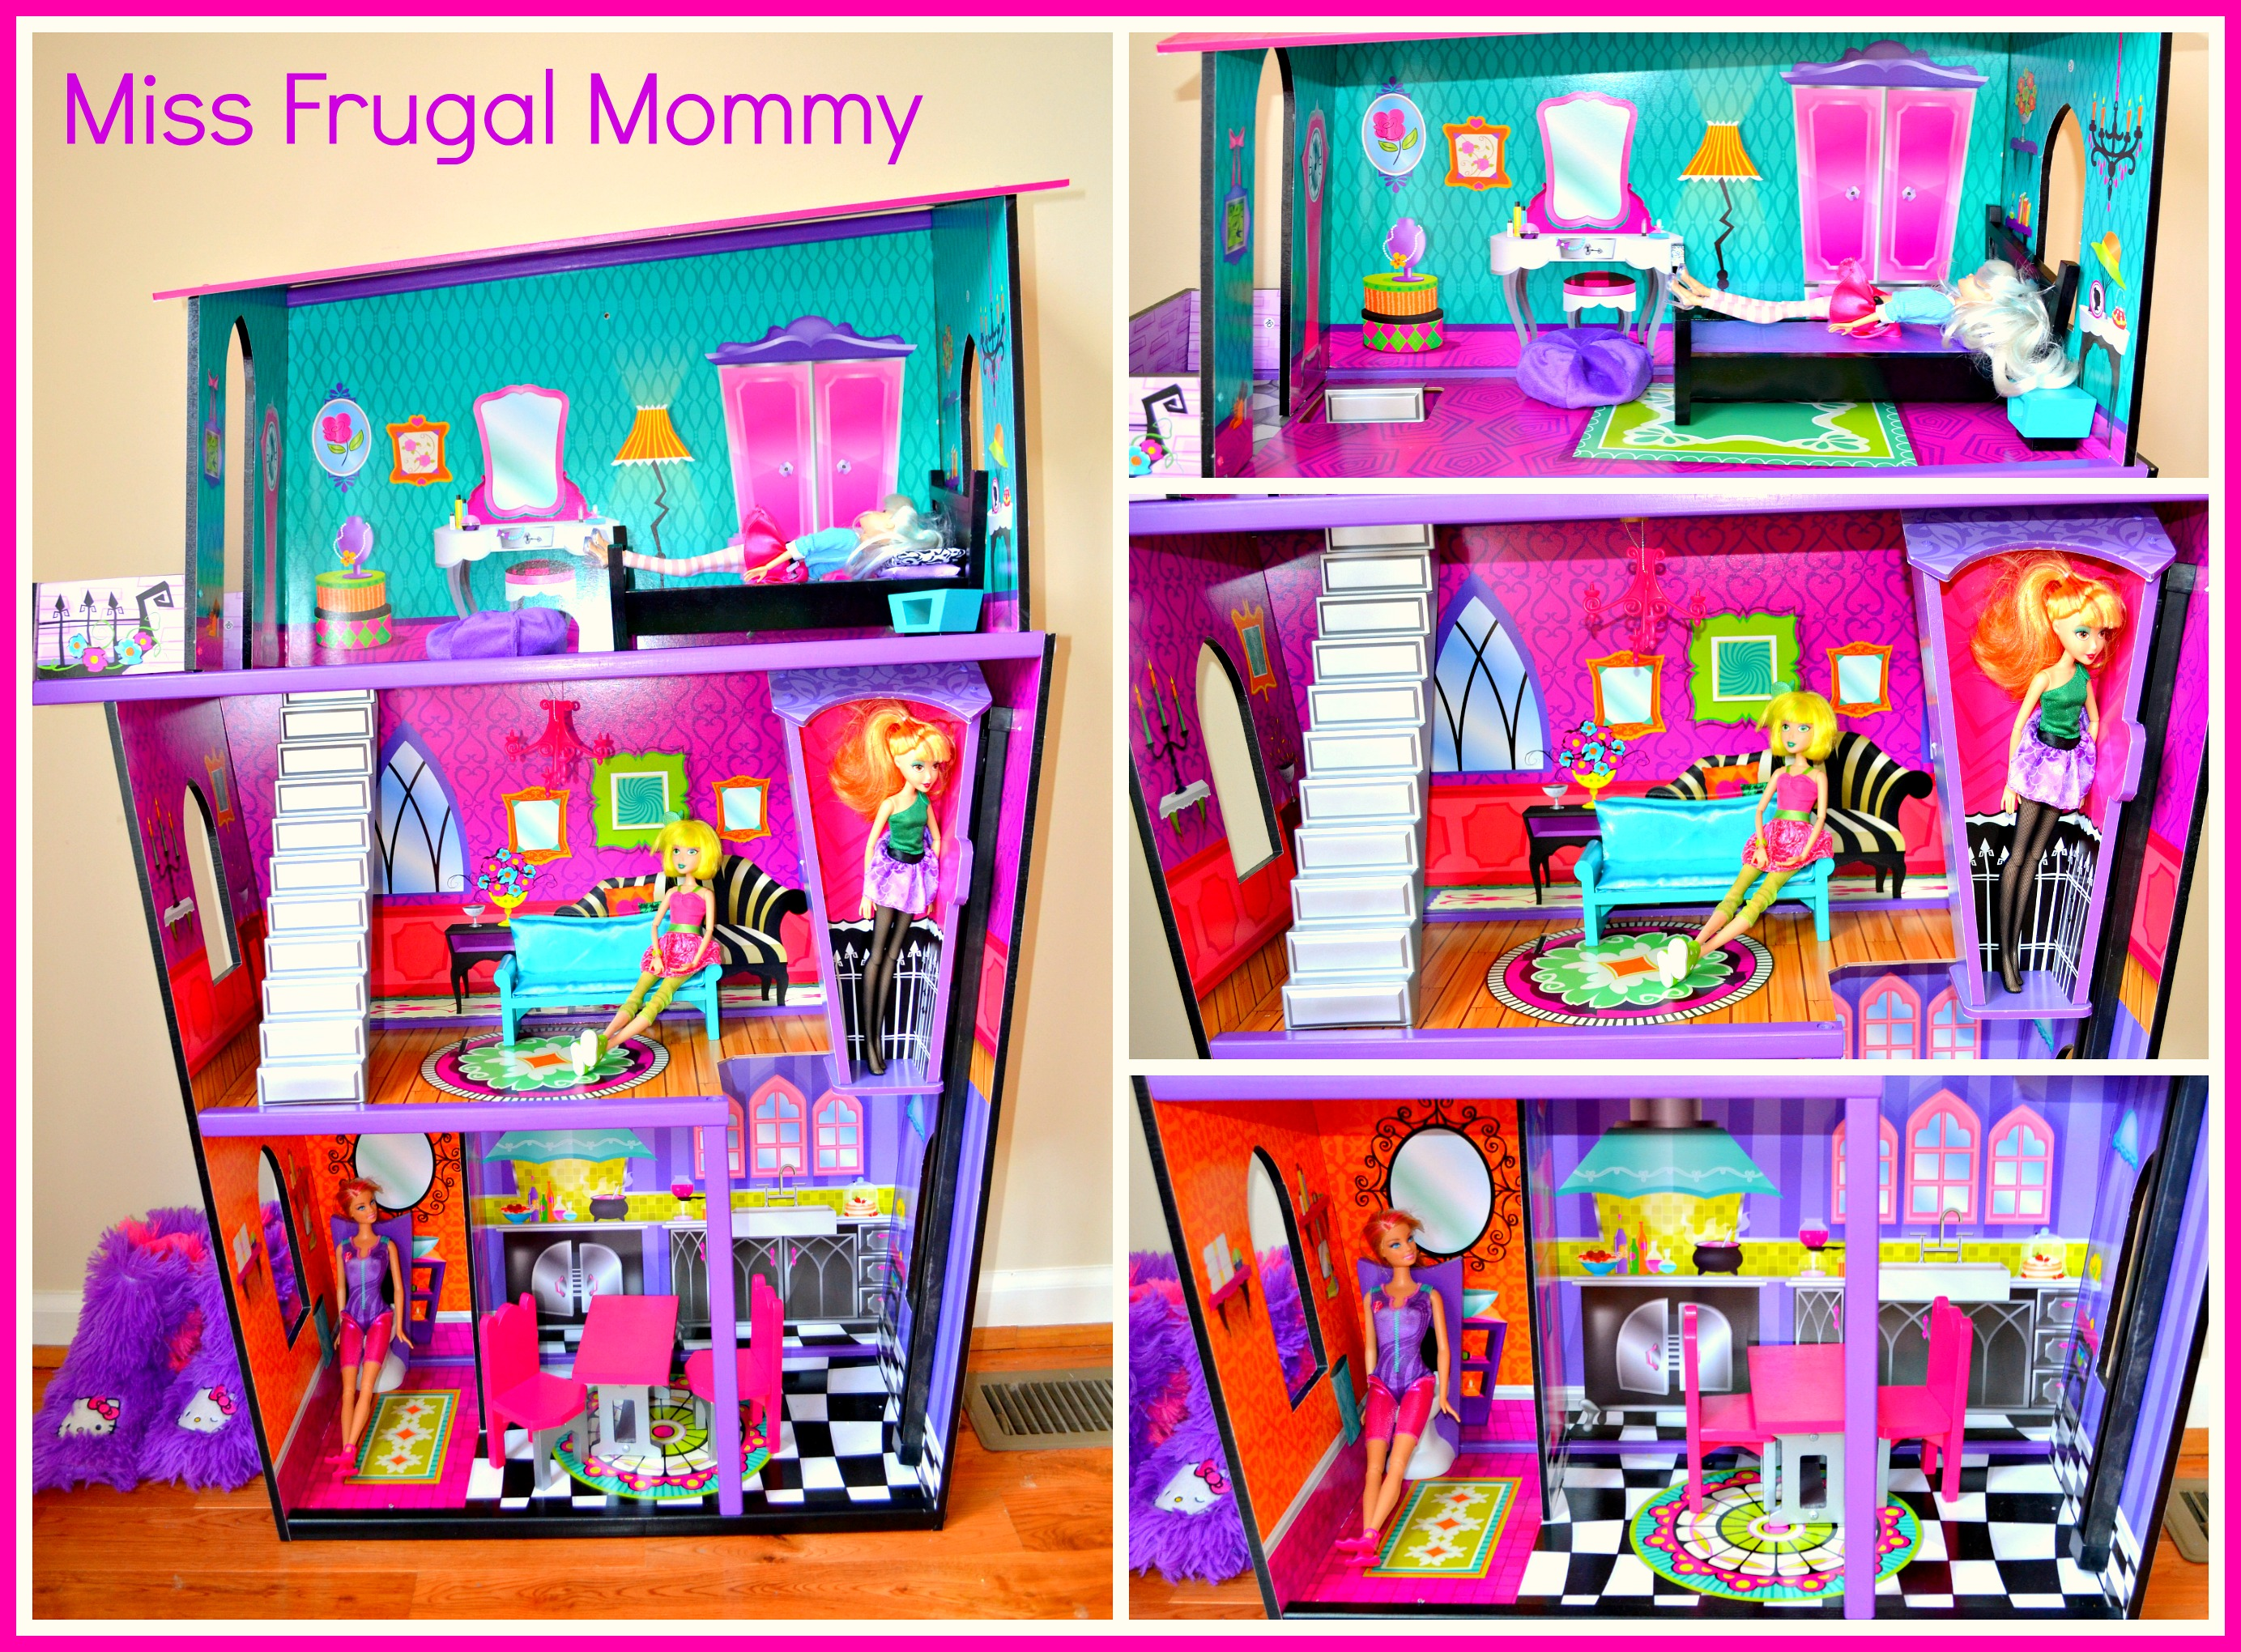 http://missfrugalmommy.com/kidkraft-monster-manor-dollhouse-review/